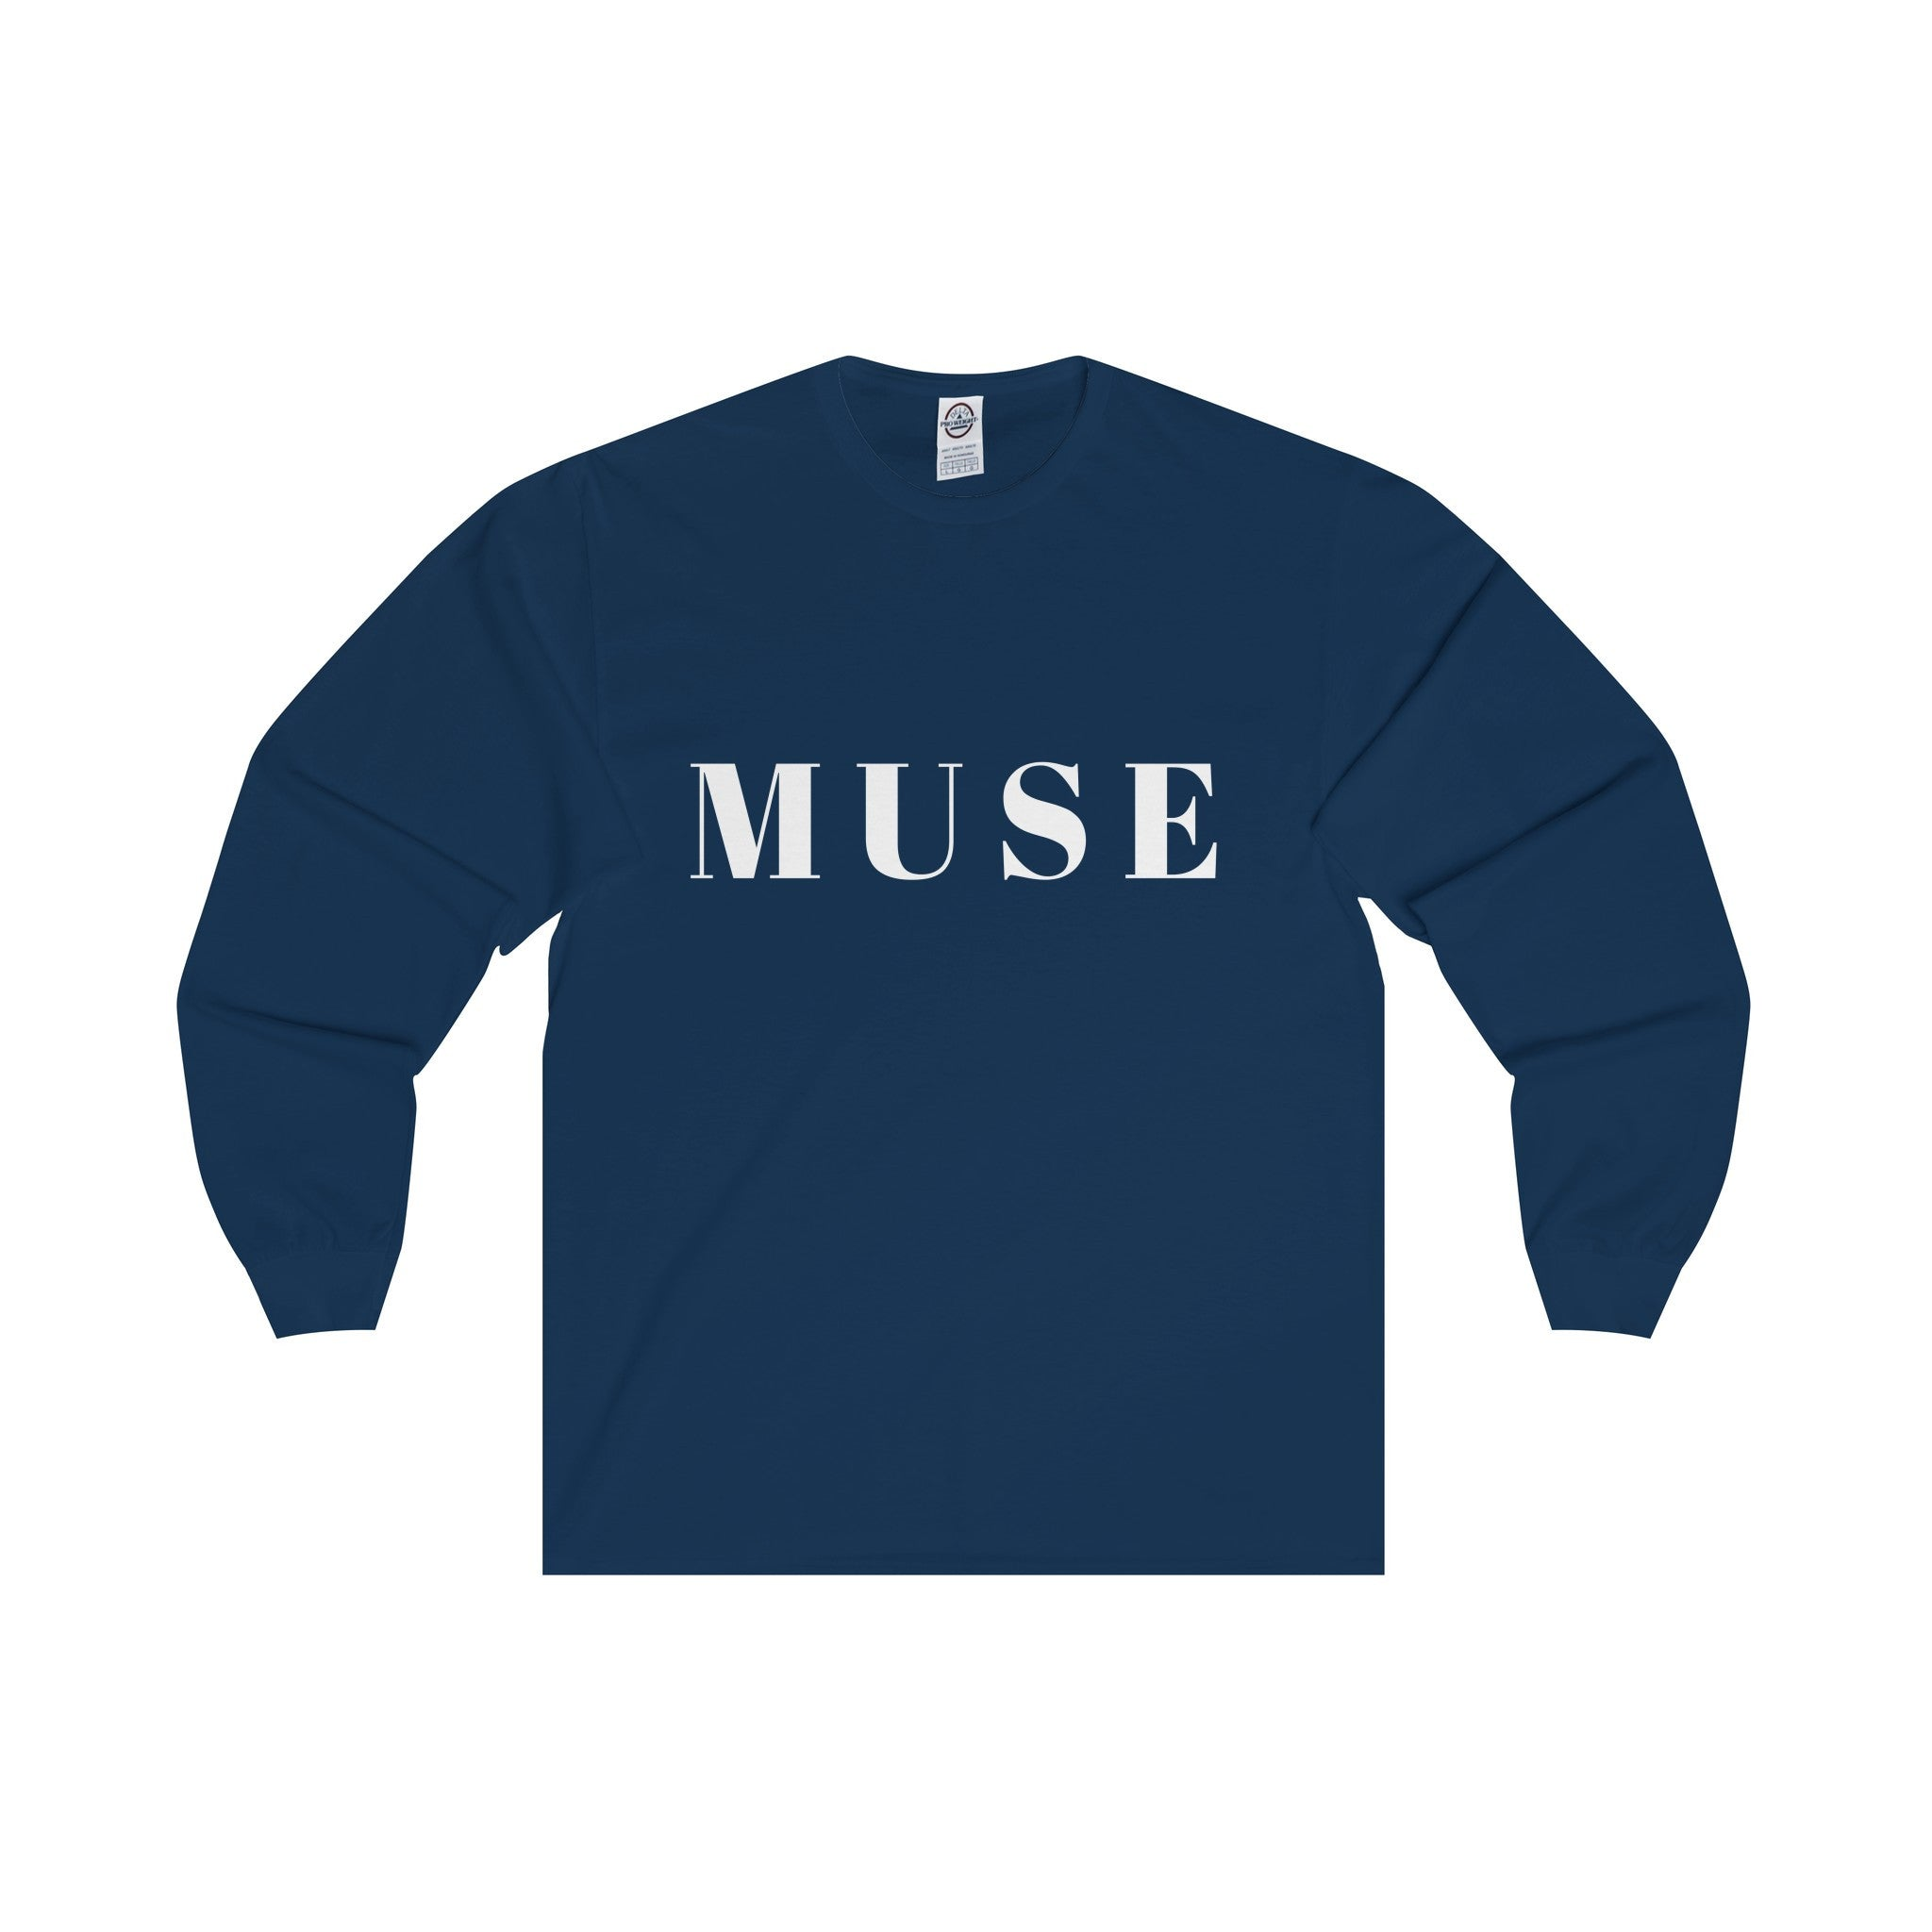 Muse White Letter Long Sleeve Tee (8 colors available)